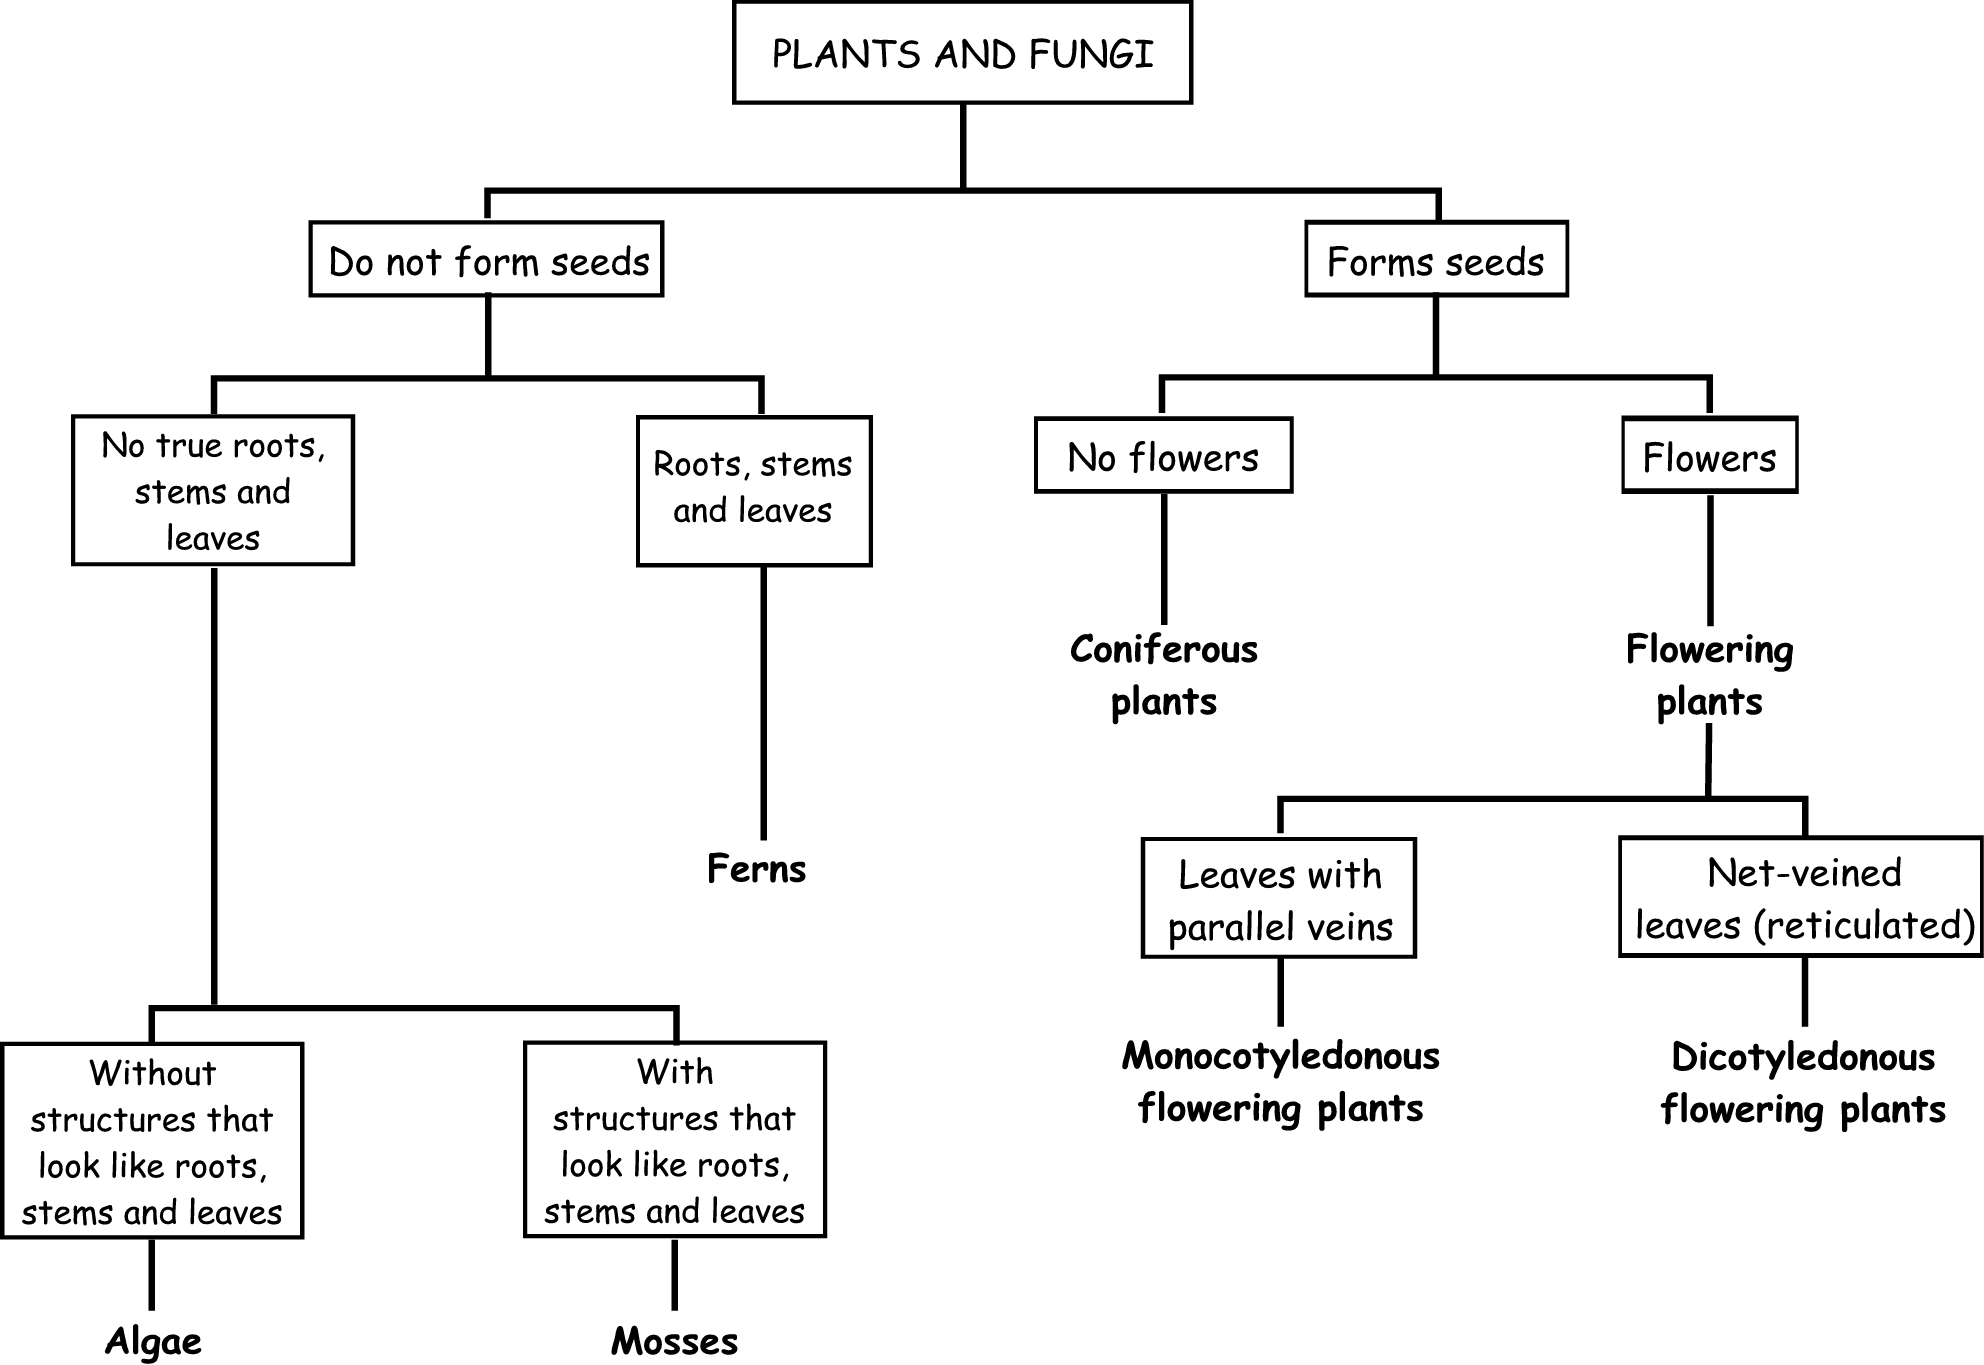 Natural Sciences To Classify Plants According To Their